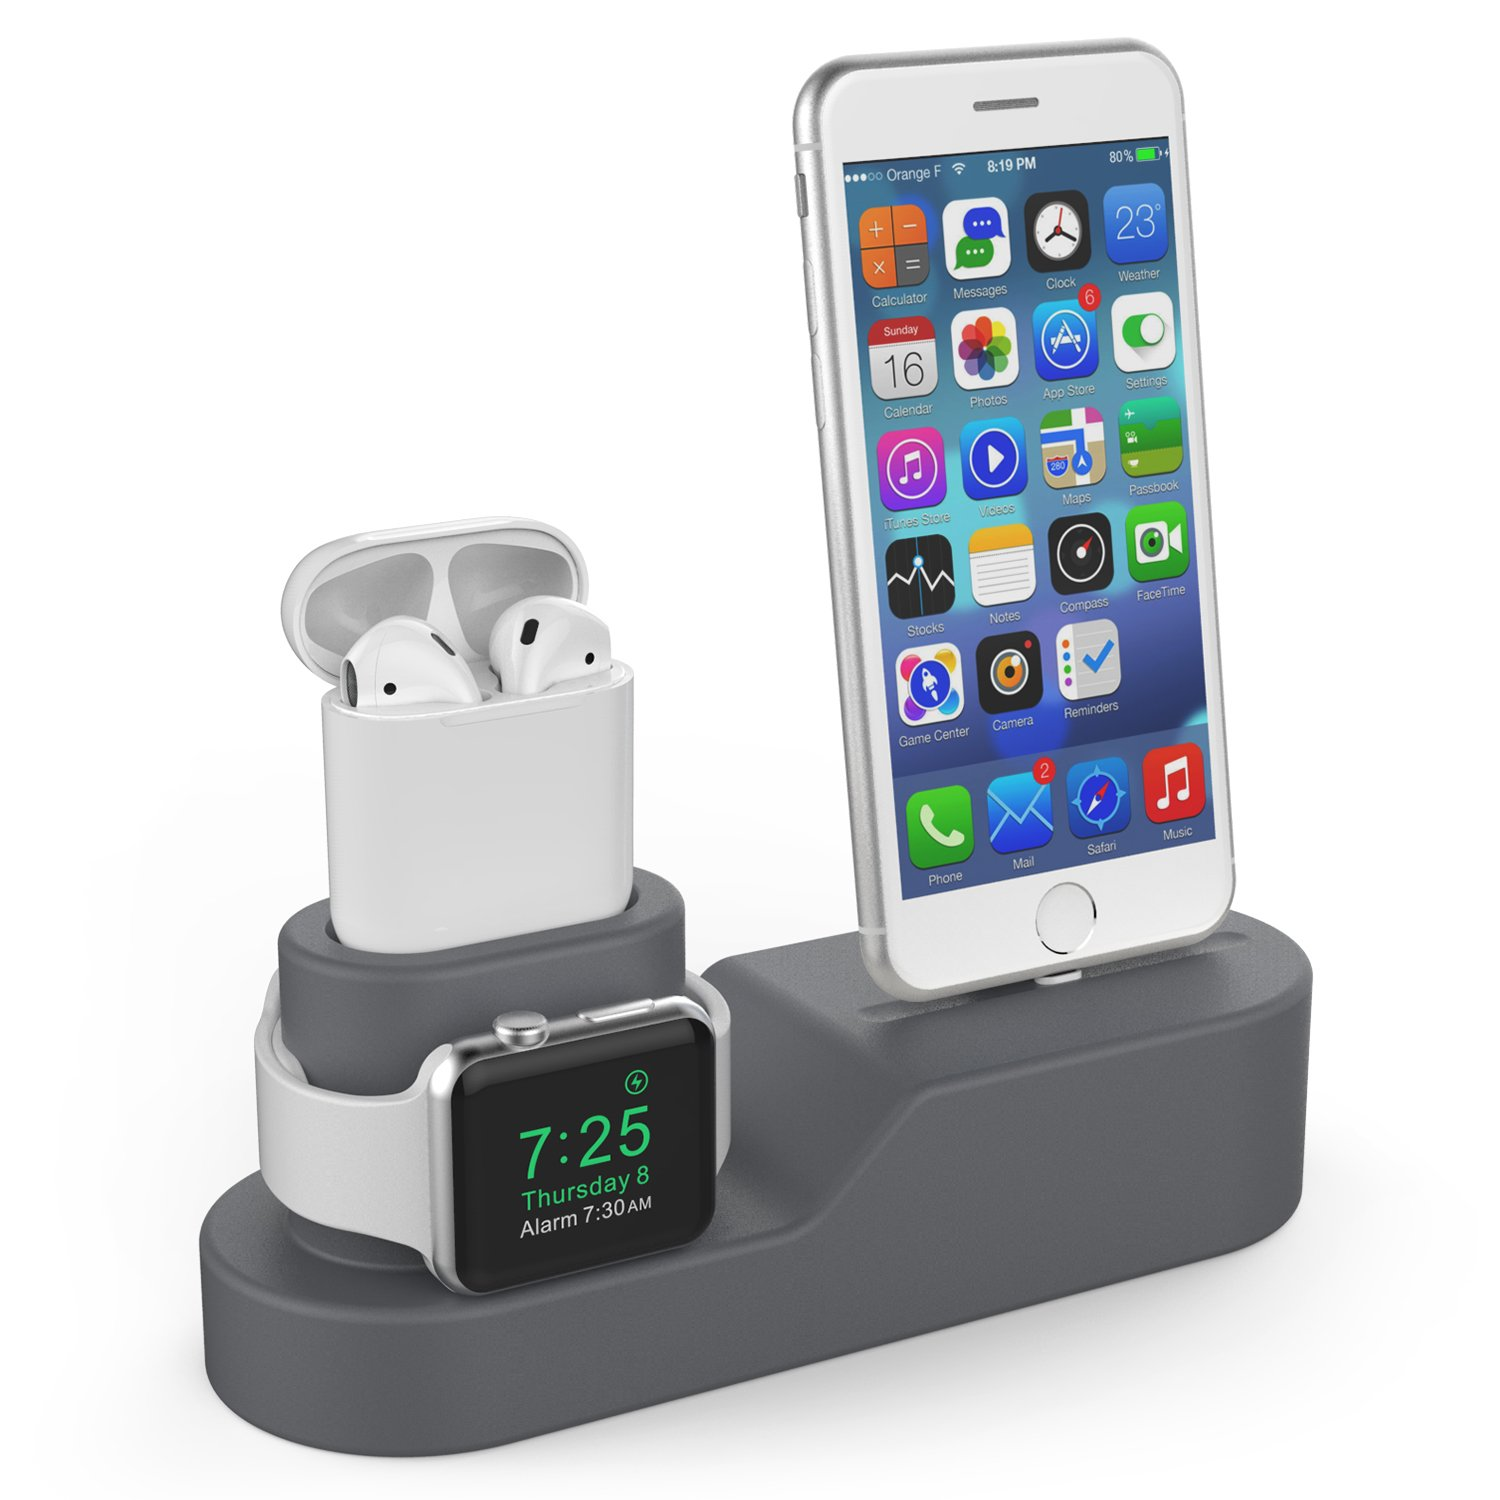 AhaStyle 3 in 1 Premium Silicone Stand Charging Dock for AirPods & Apple Watch & iPhone [Compatible with Apple Original Lightning Cable ONLY] [Cables,Watch Adaptor NOT included] (Dark Gray)